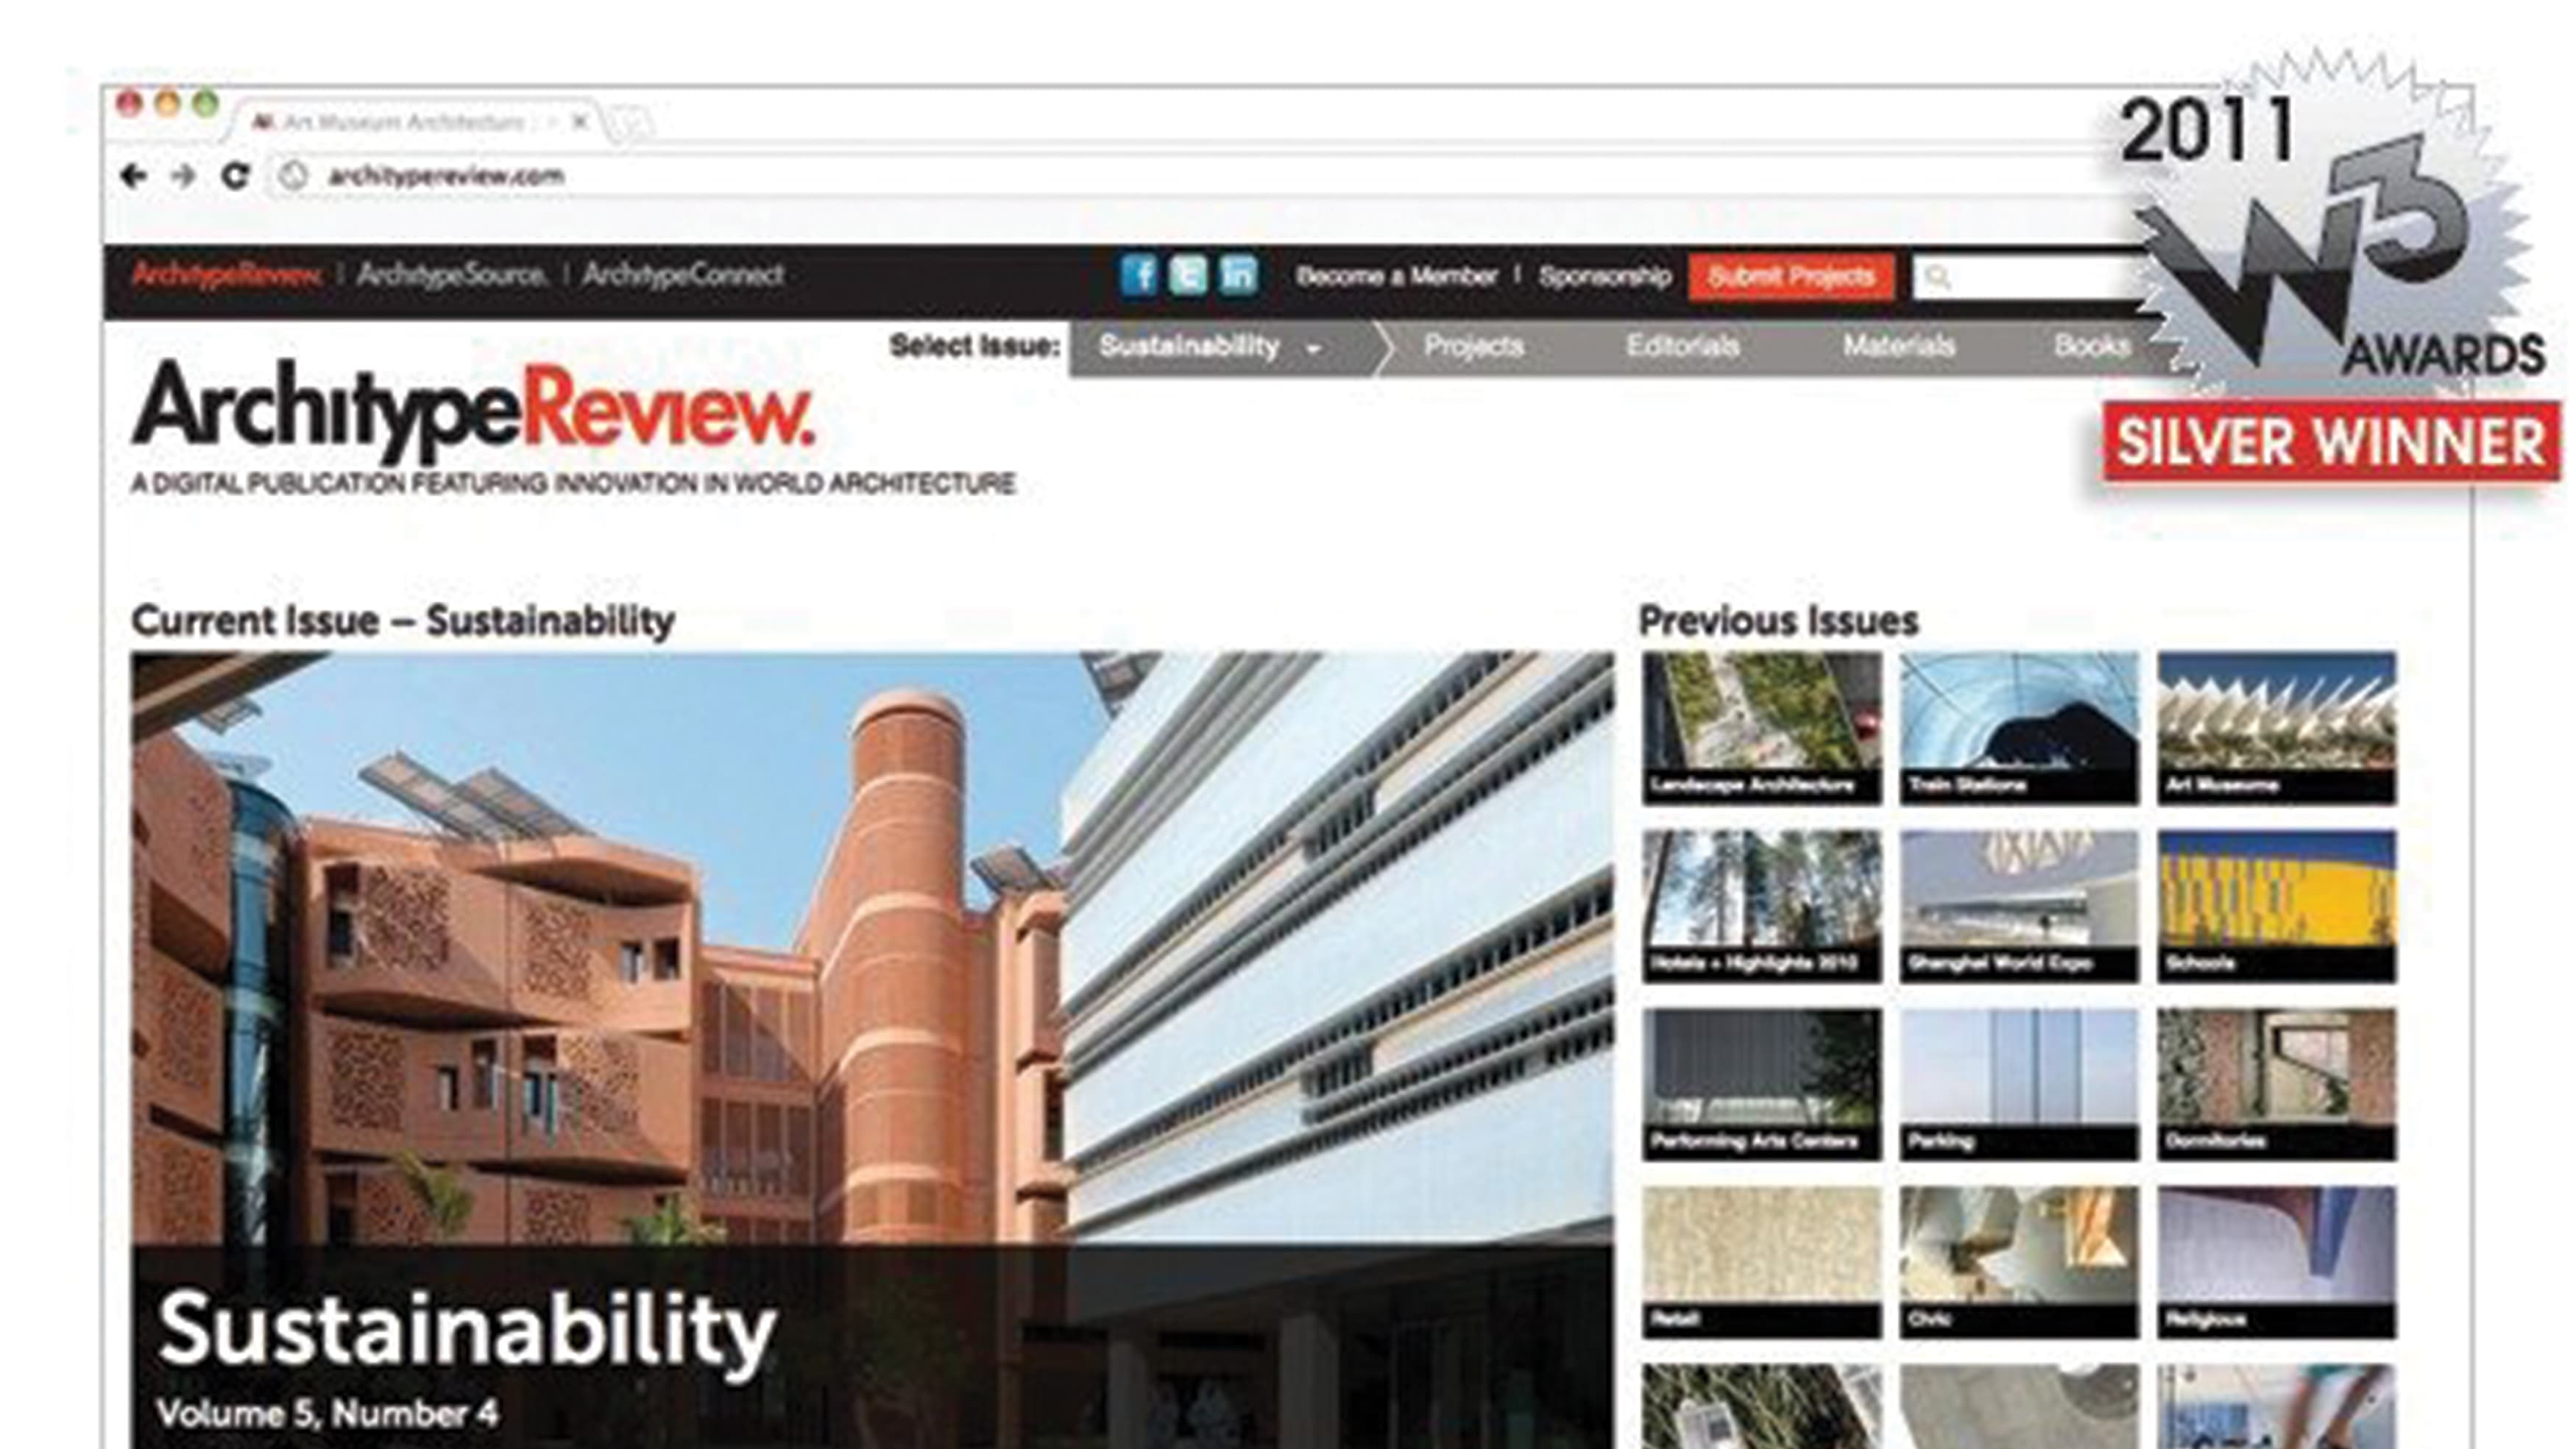 RSM Design collaborated with LJG partners to re-design Architype's website, which went on to win a silver design award for the 2011 W3 Awards.